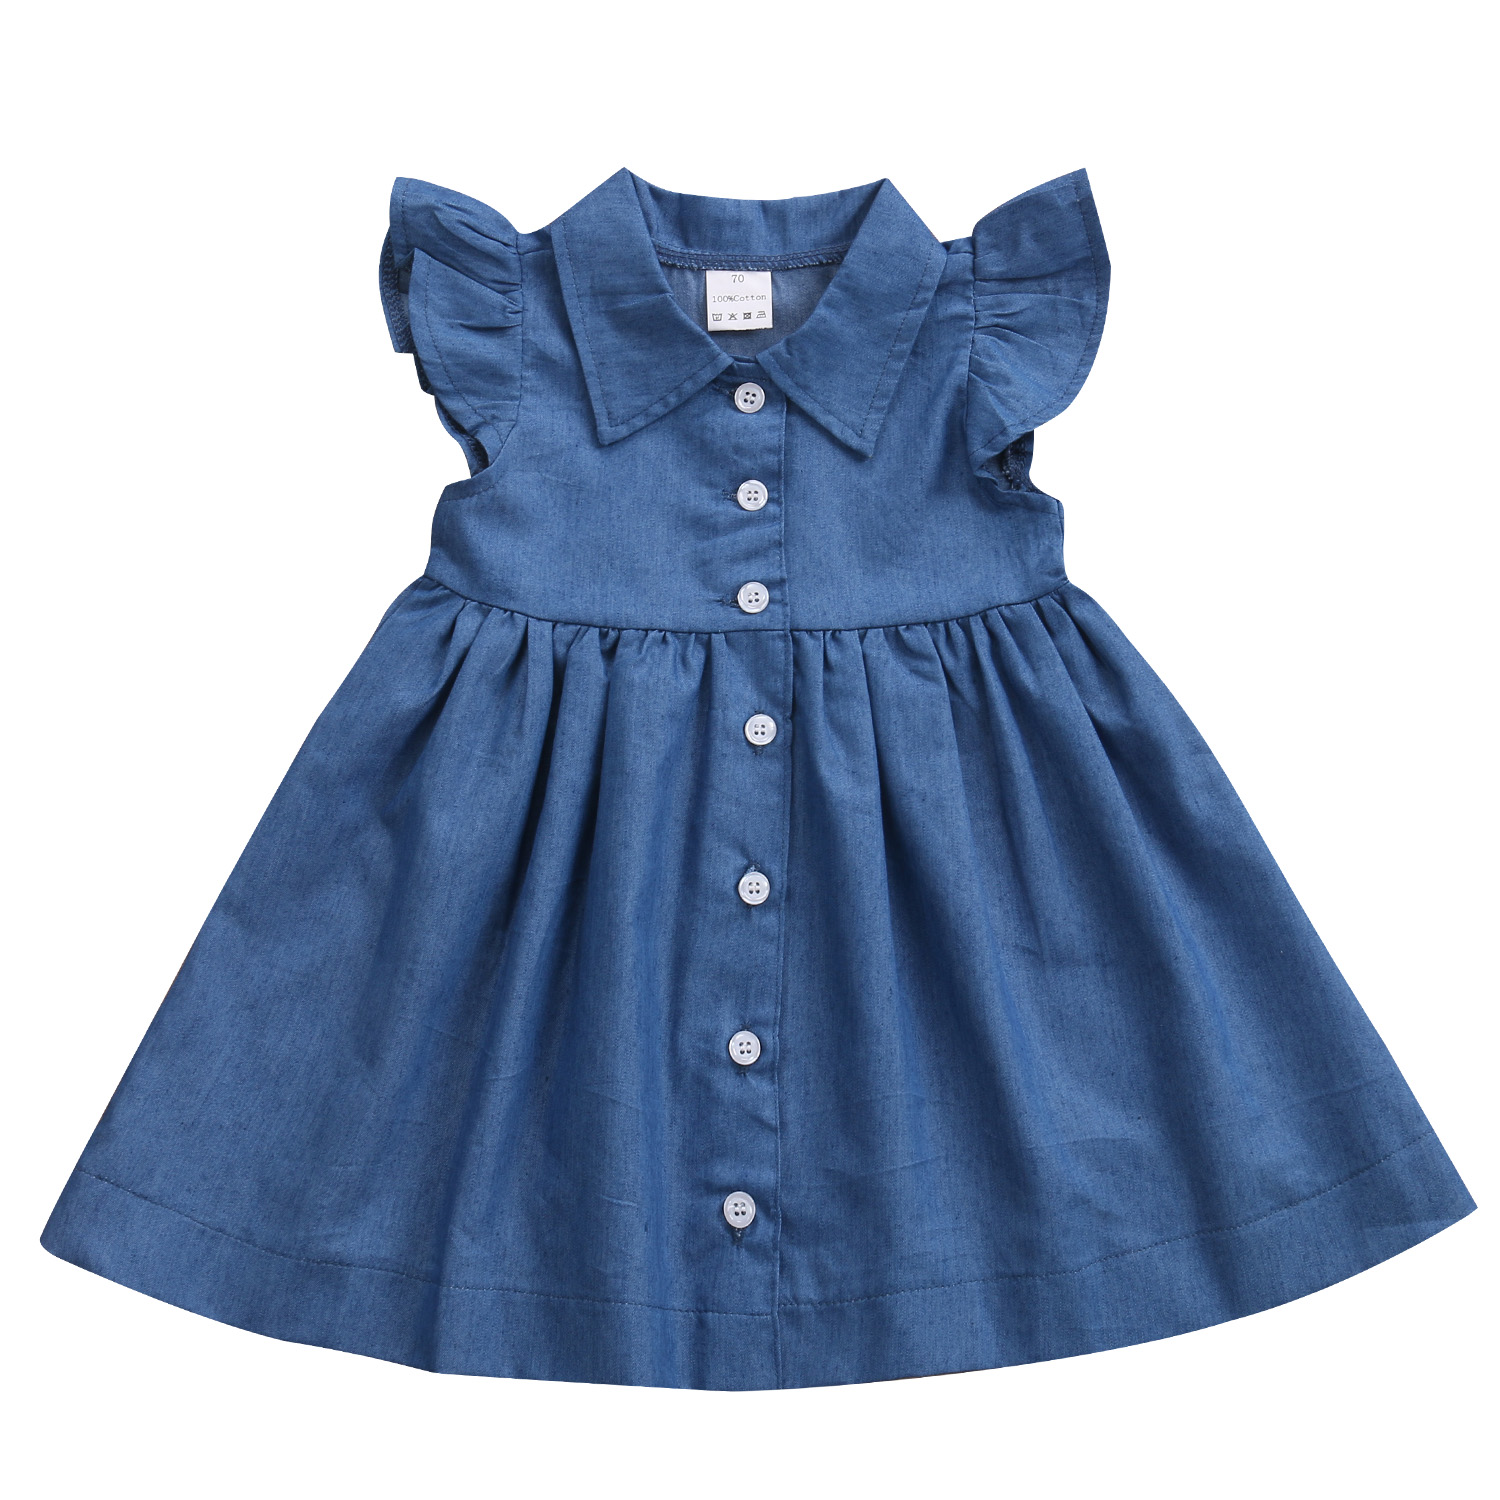 Child Woman Denim Costume Toddler Child Youngsters Ladies Denim Princess Summer season Sundress Social gathering Informal Vogue Costume Garments Child Woman Youngsters